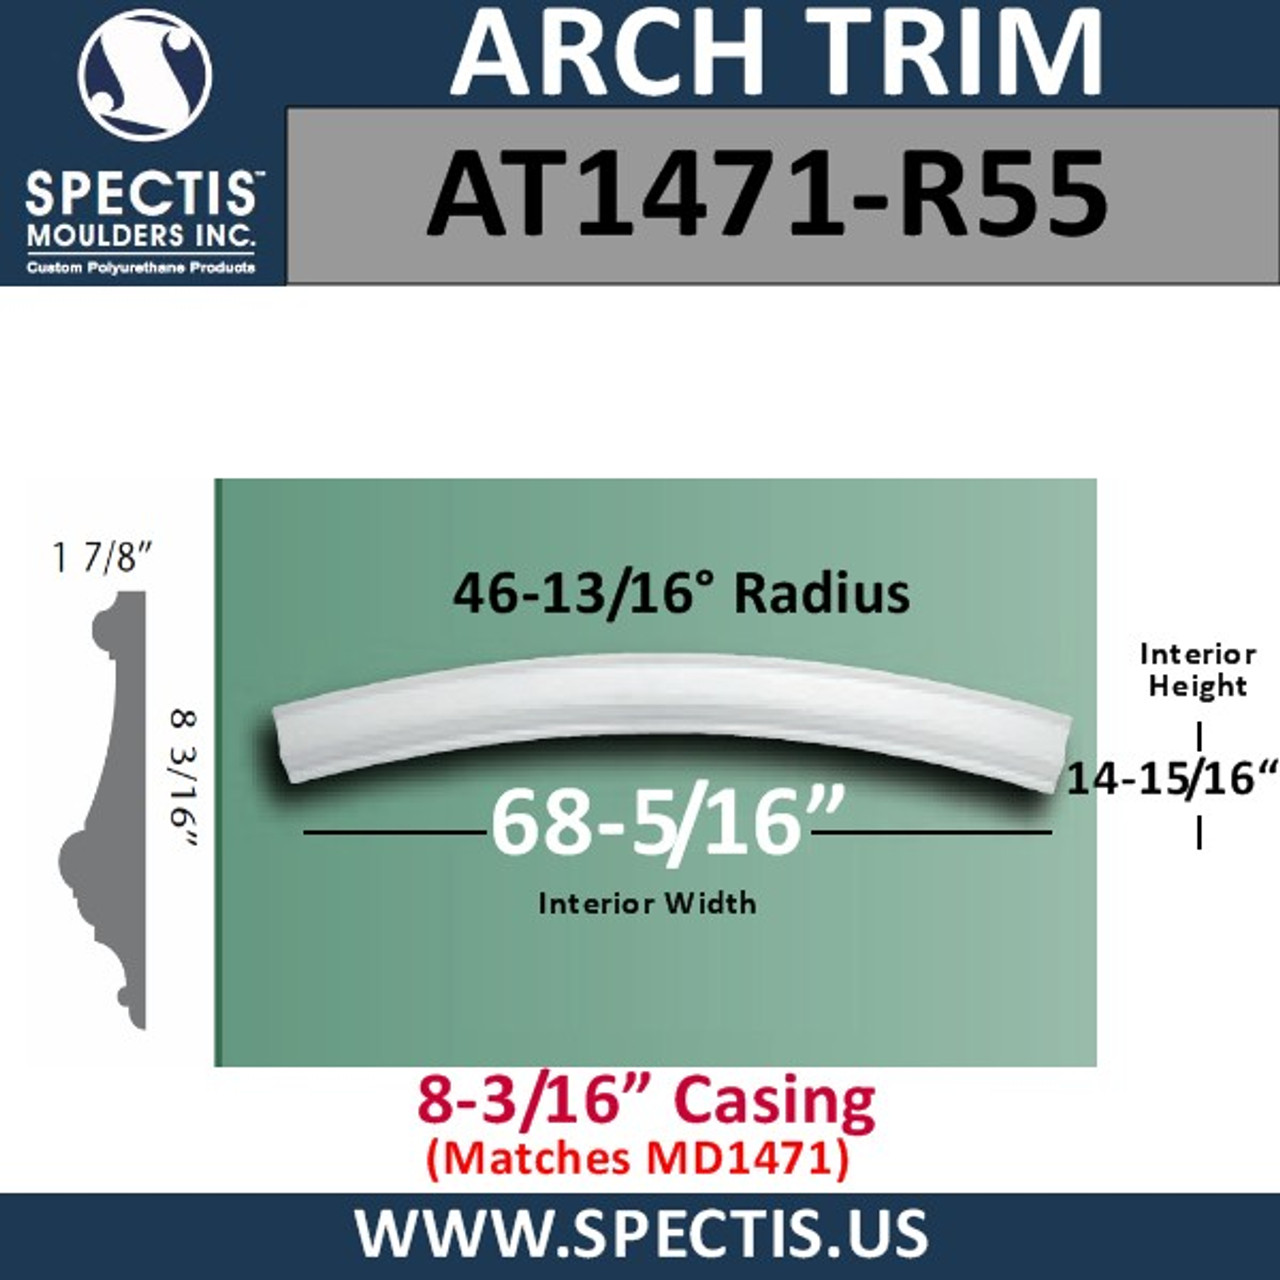 "AT1471-R55 Arch Moulding 8-3/16"" Casing 46 13/16 Radius"